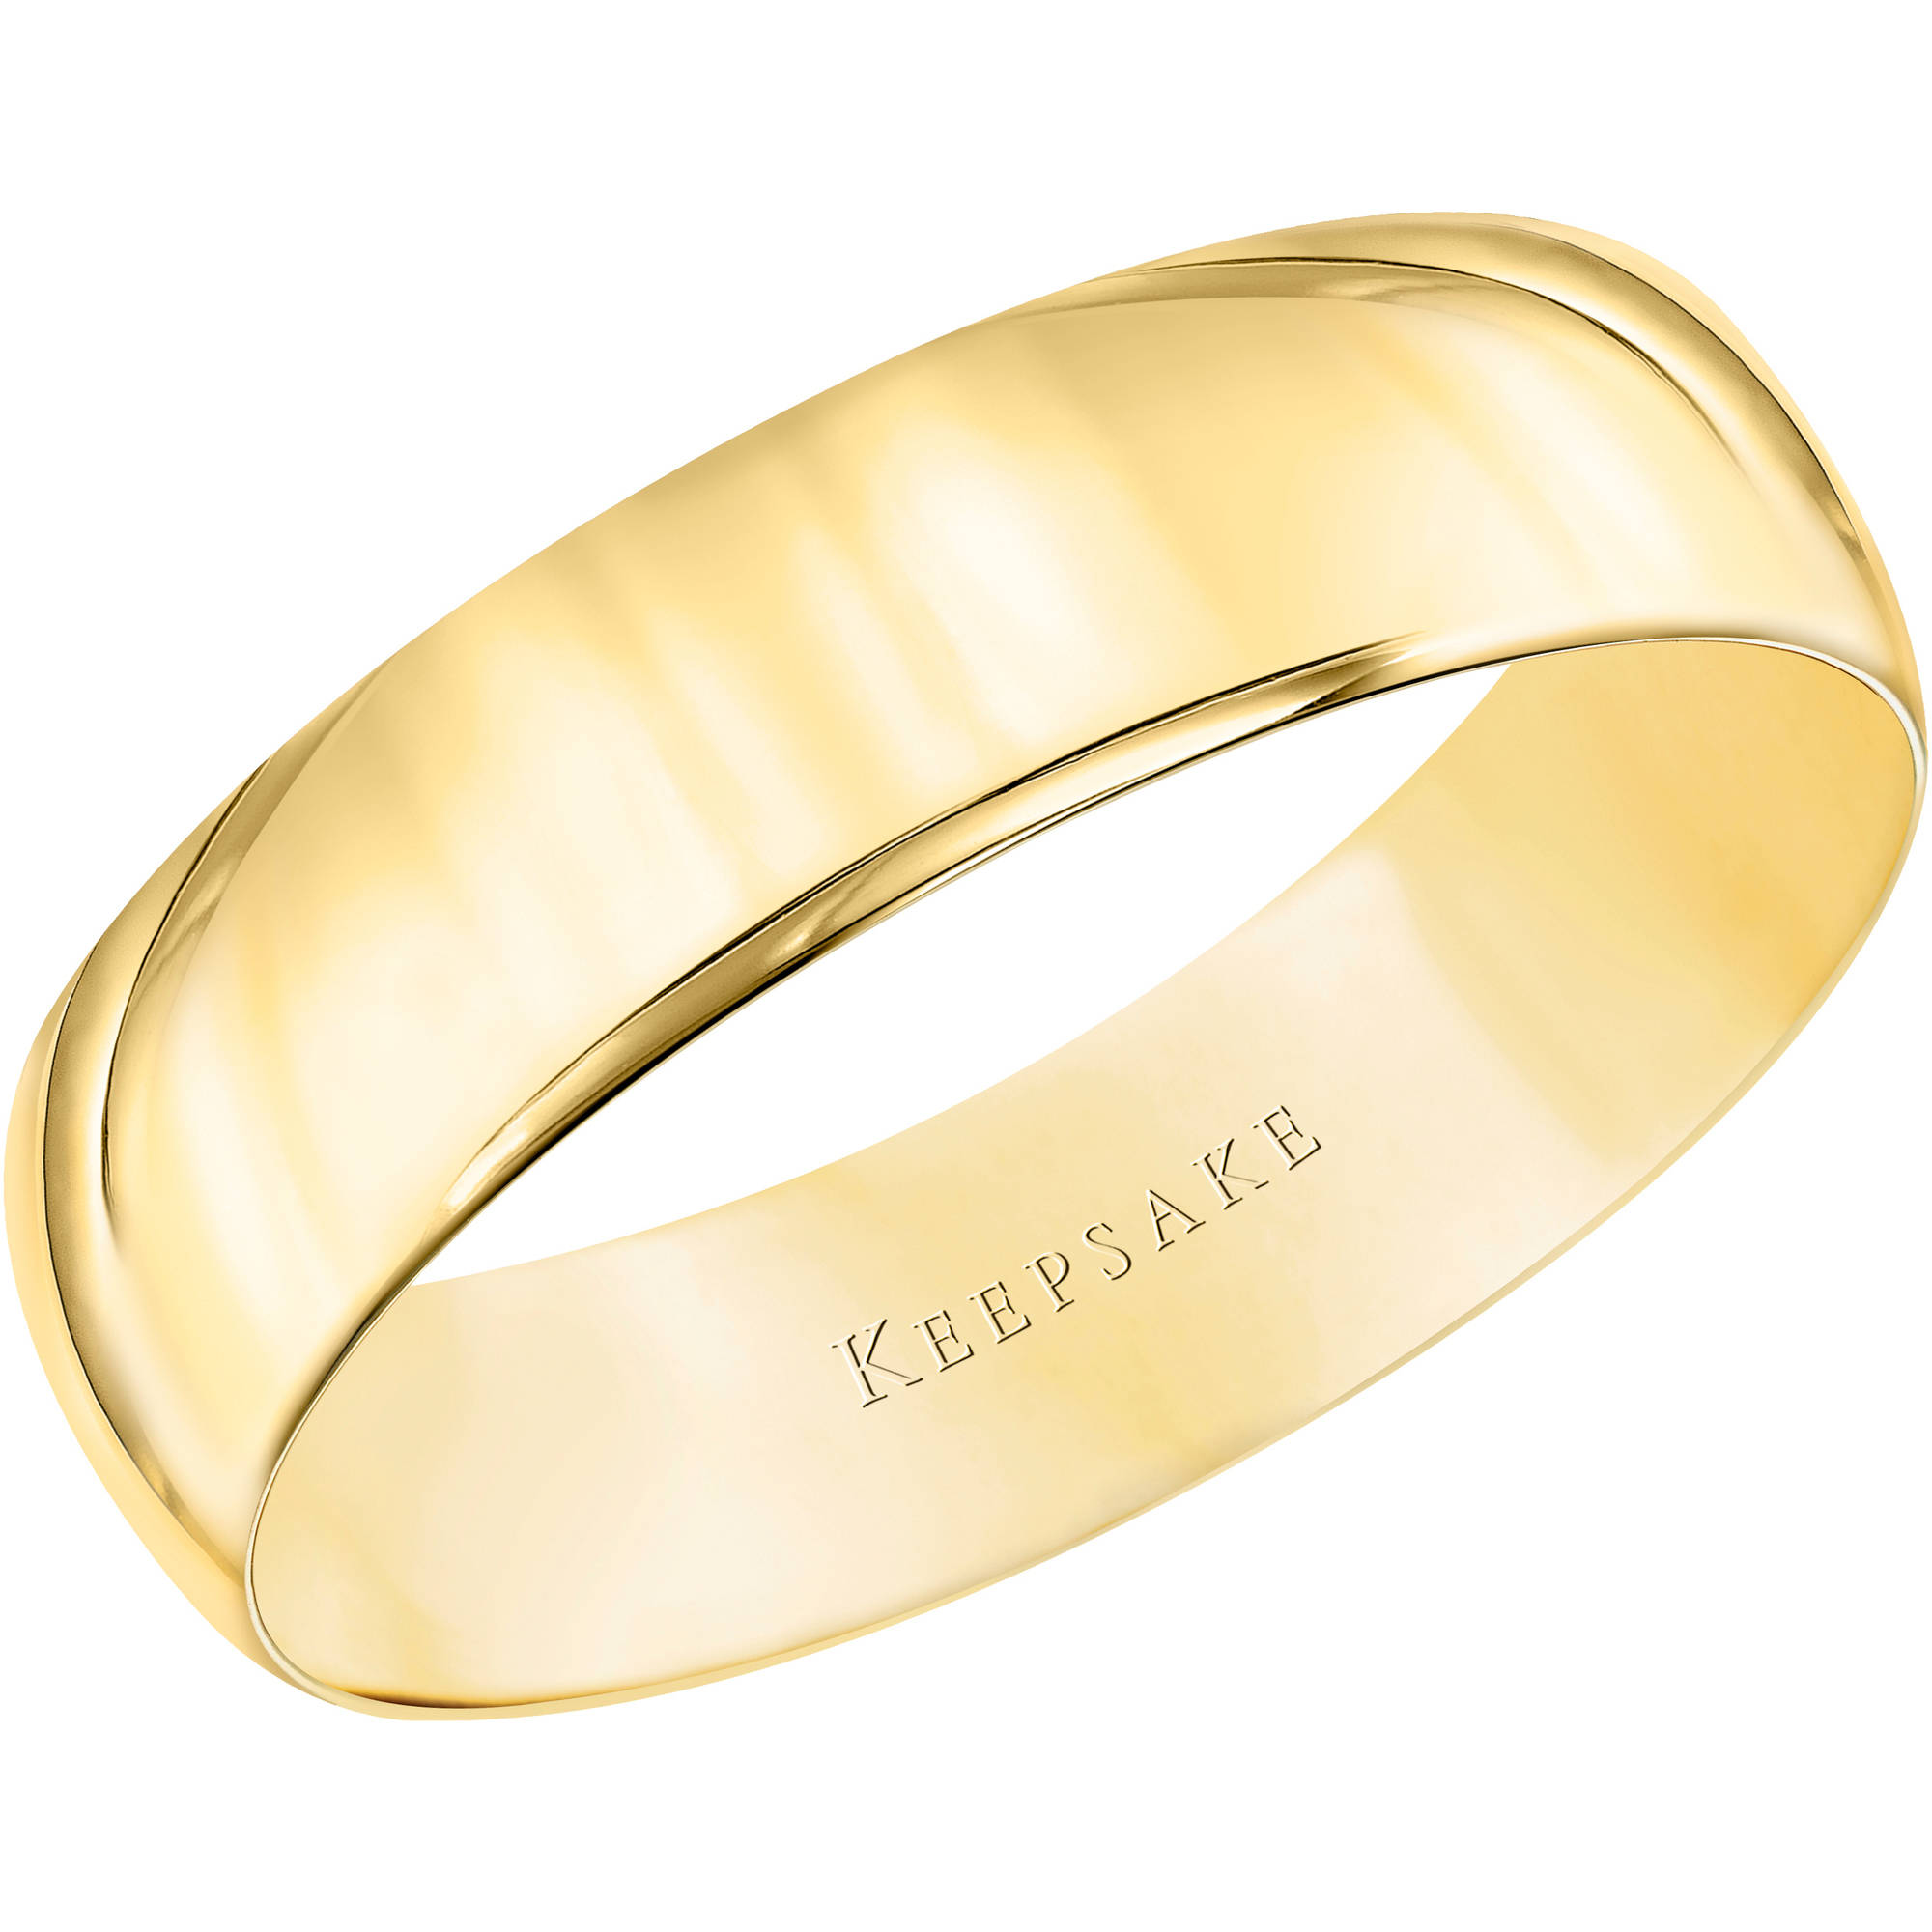 Walmart Wedding Bands.10kt Yellow Gold Comfort Fit Wedding Band 5 5mm